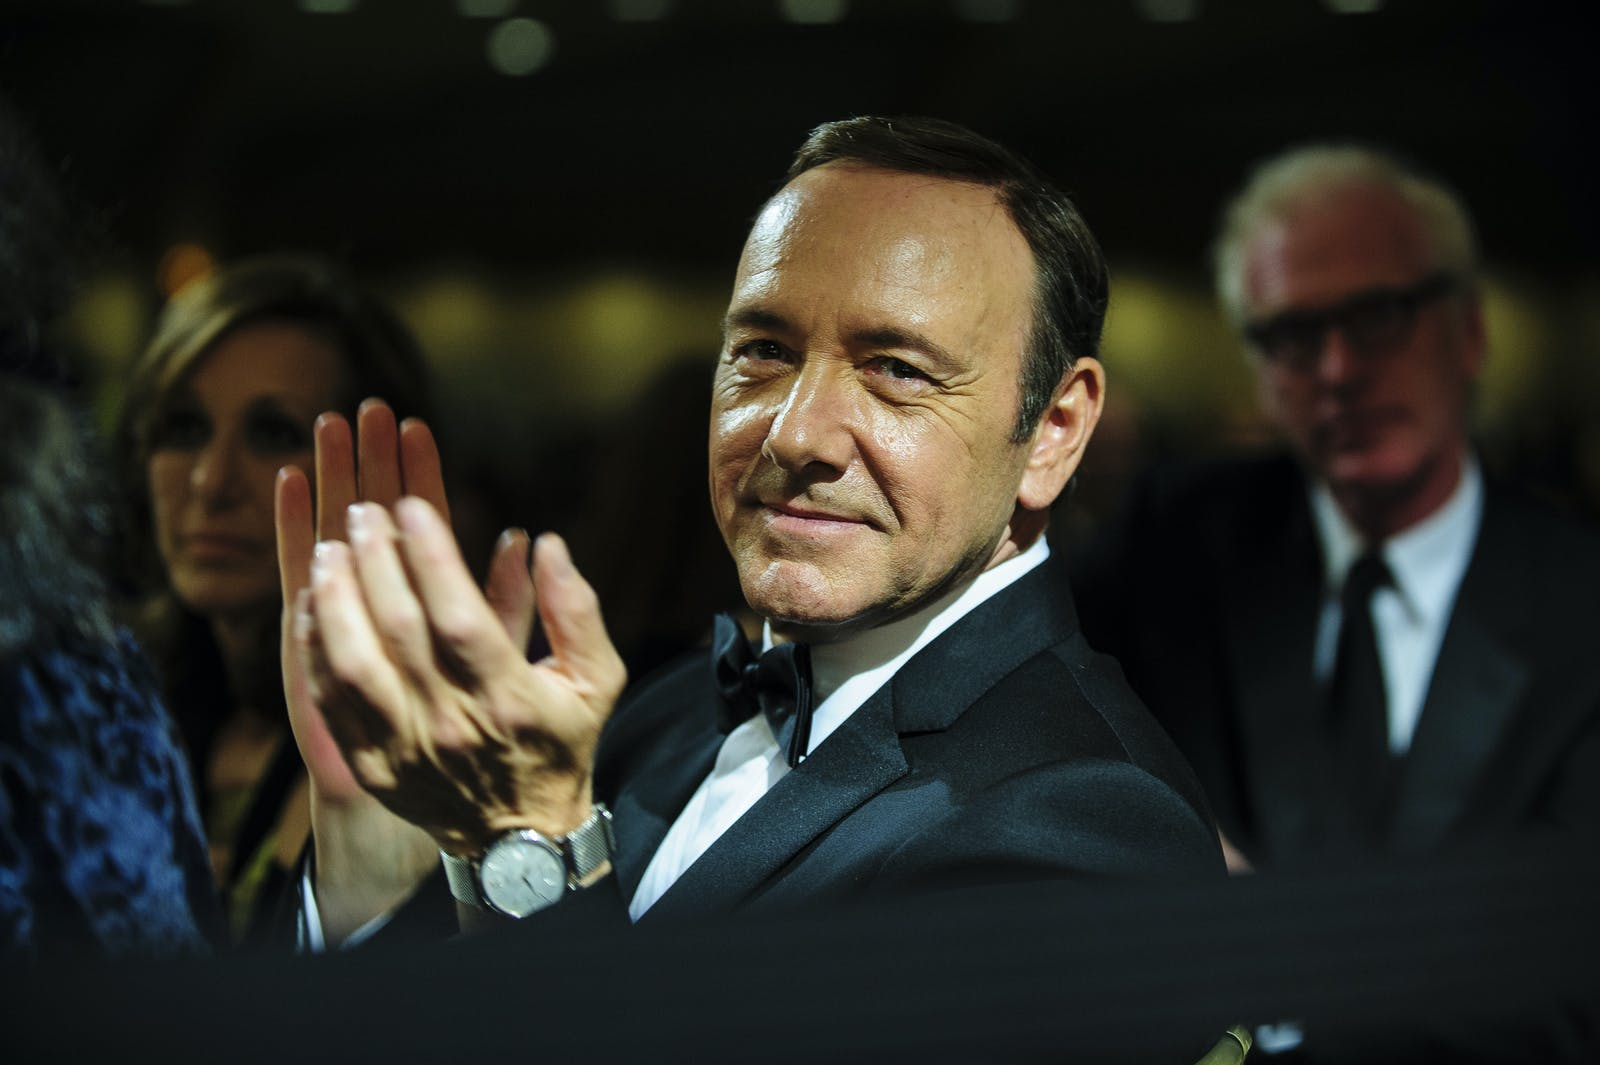 House of Cards star Kevin Spacey. Photo by Bloomberg.